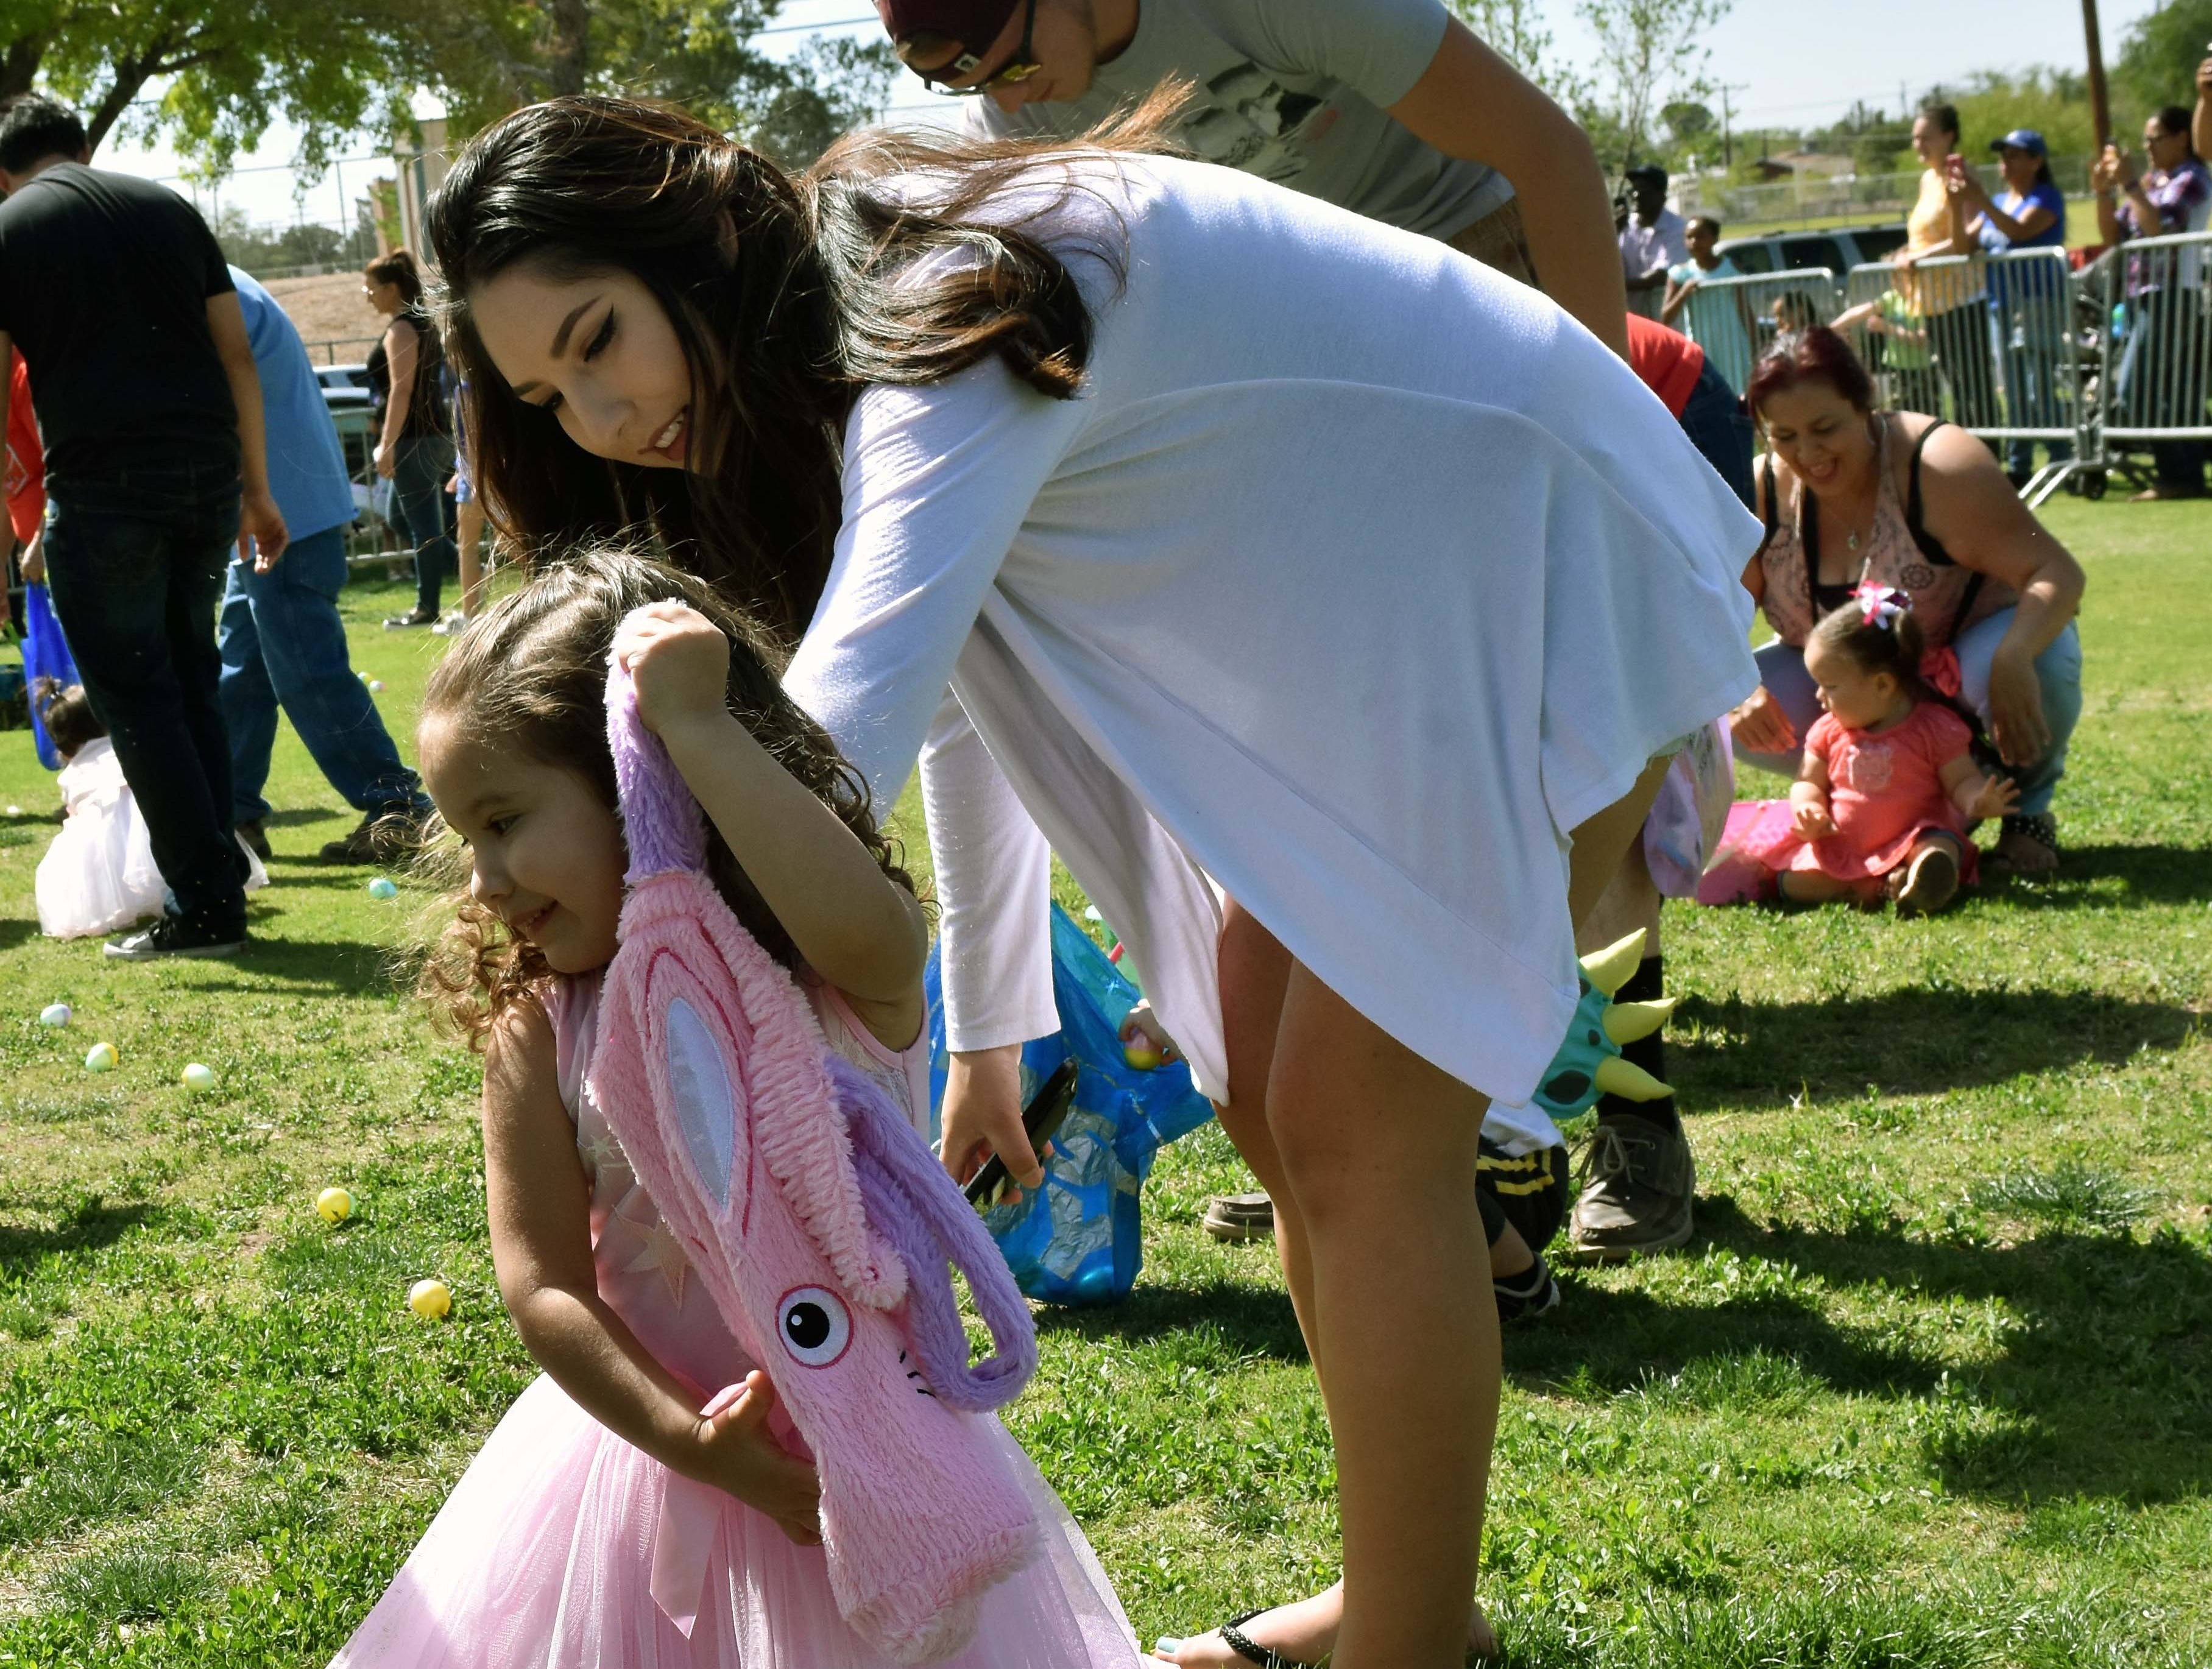 Natalie Lara fills her basket as her mother Jamie Lara helps her along during this year's SpringFest at Young Park on Saturday, April 20, 2019.